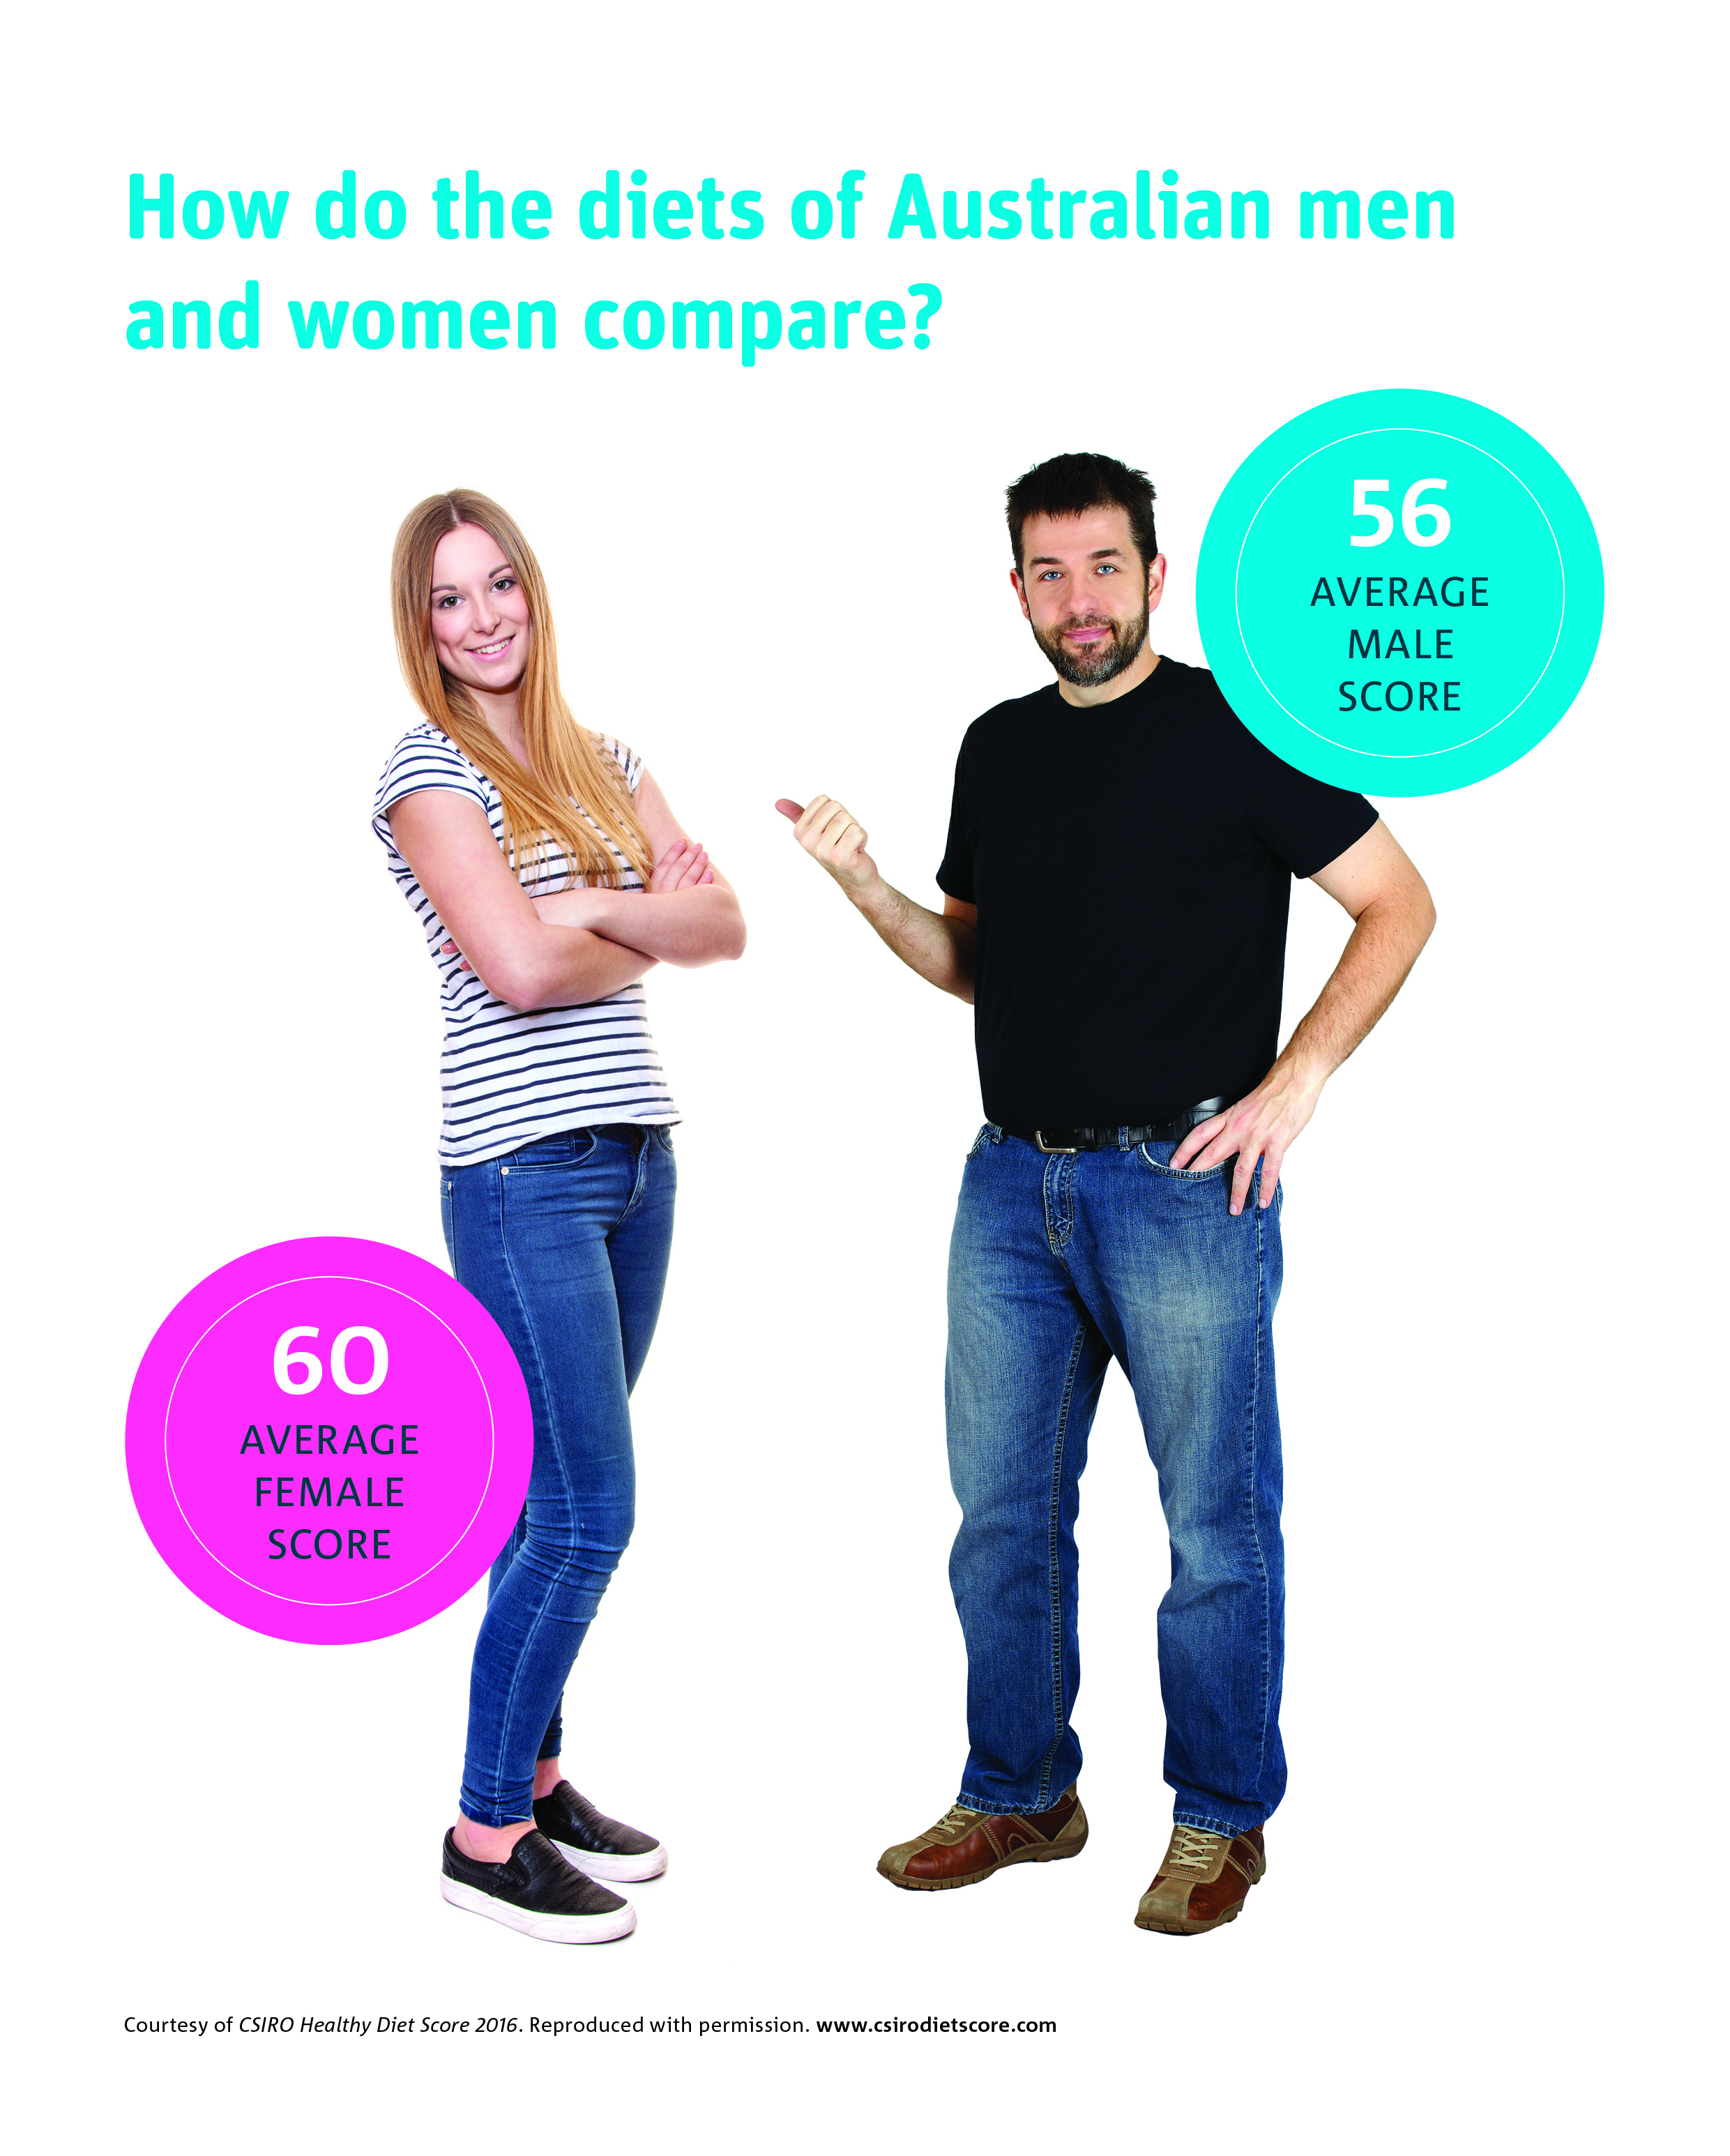 Man and woman standing together showing average diet  scores for each; Female score = 60; male score = 56.